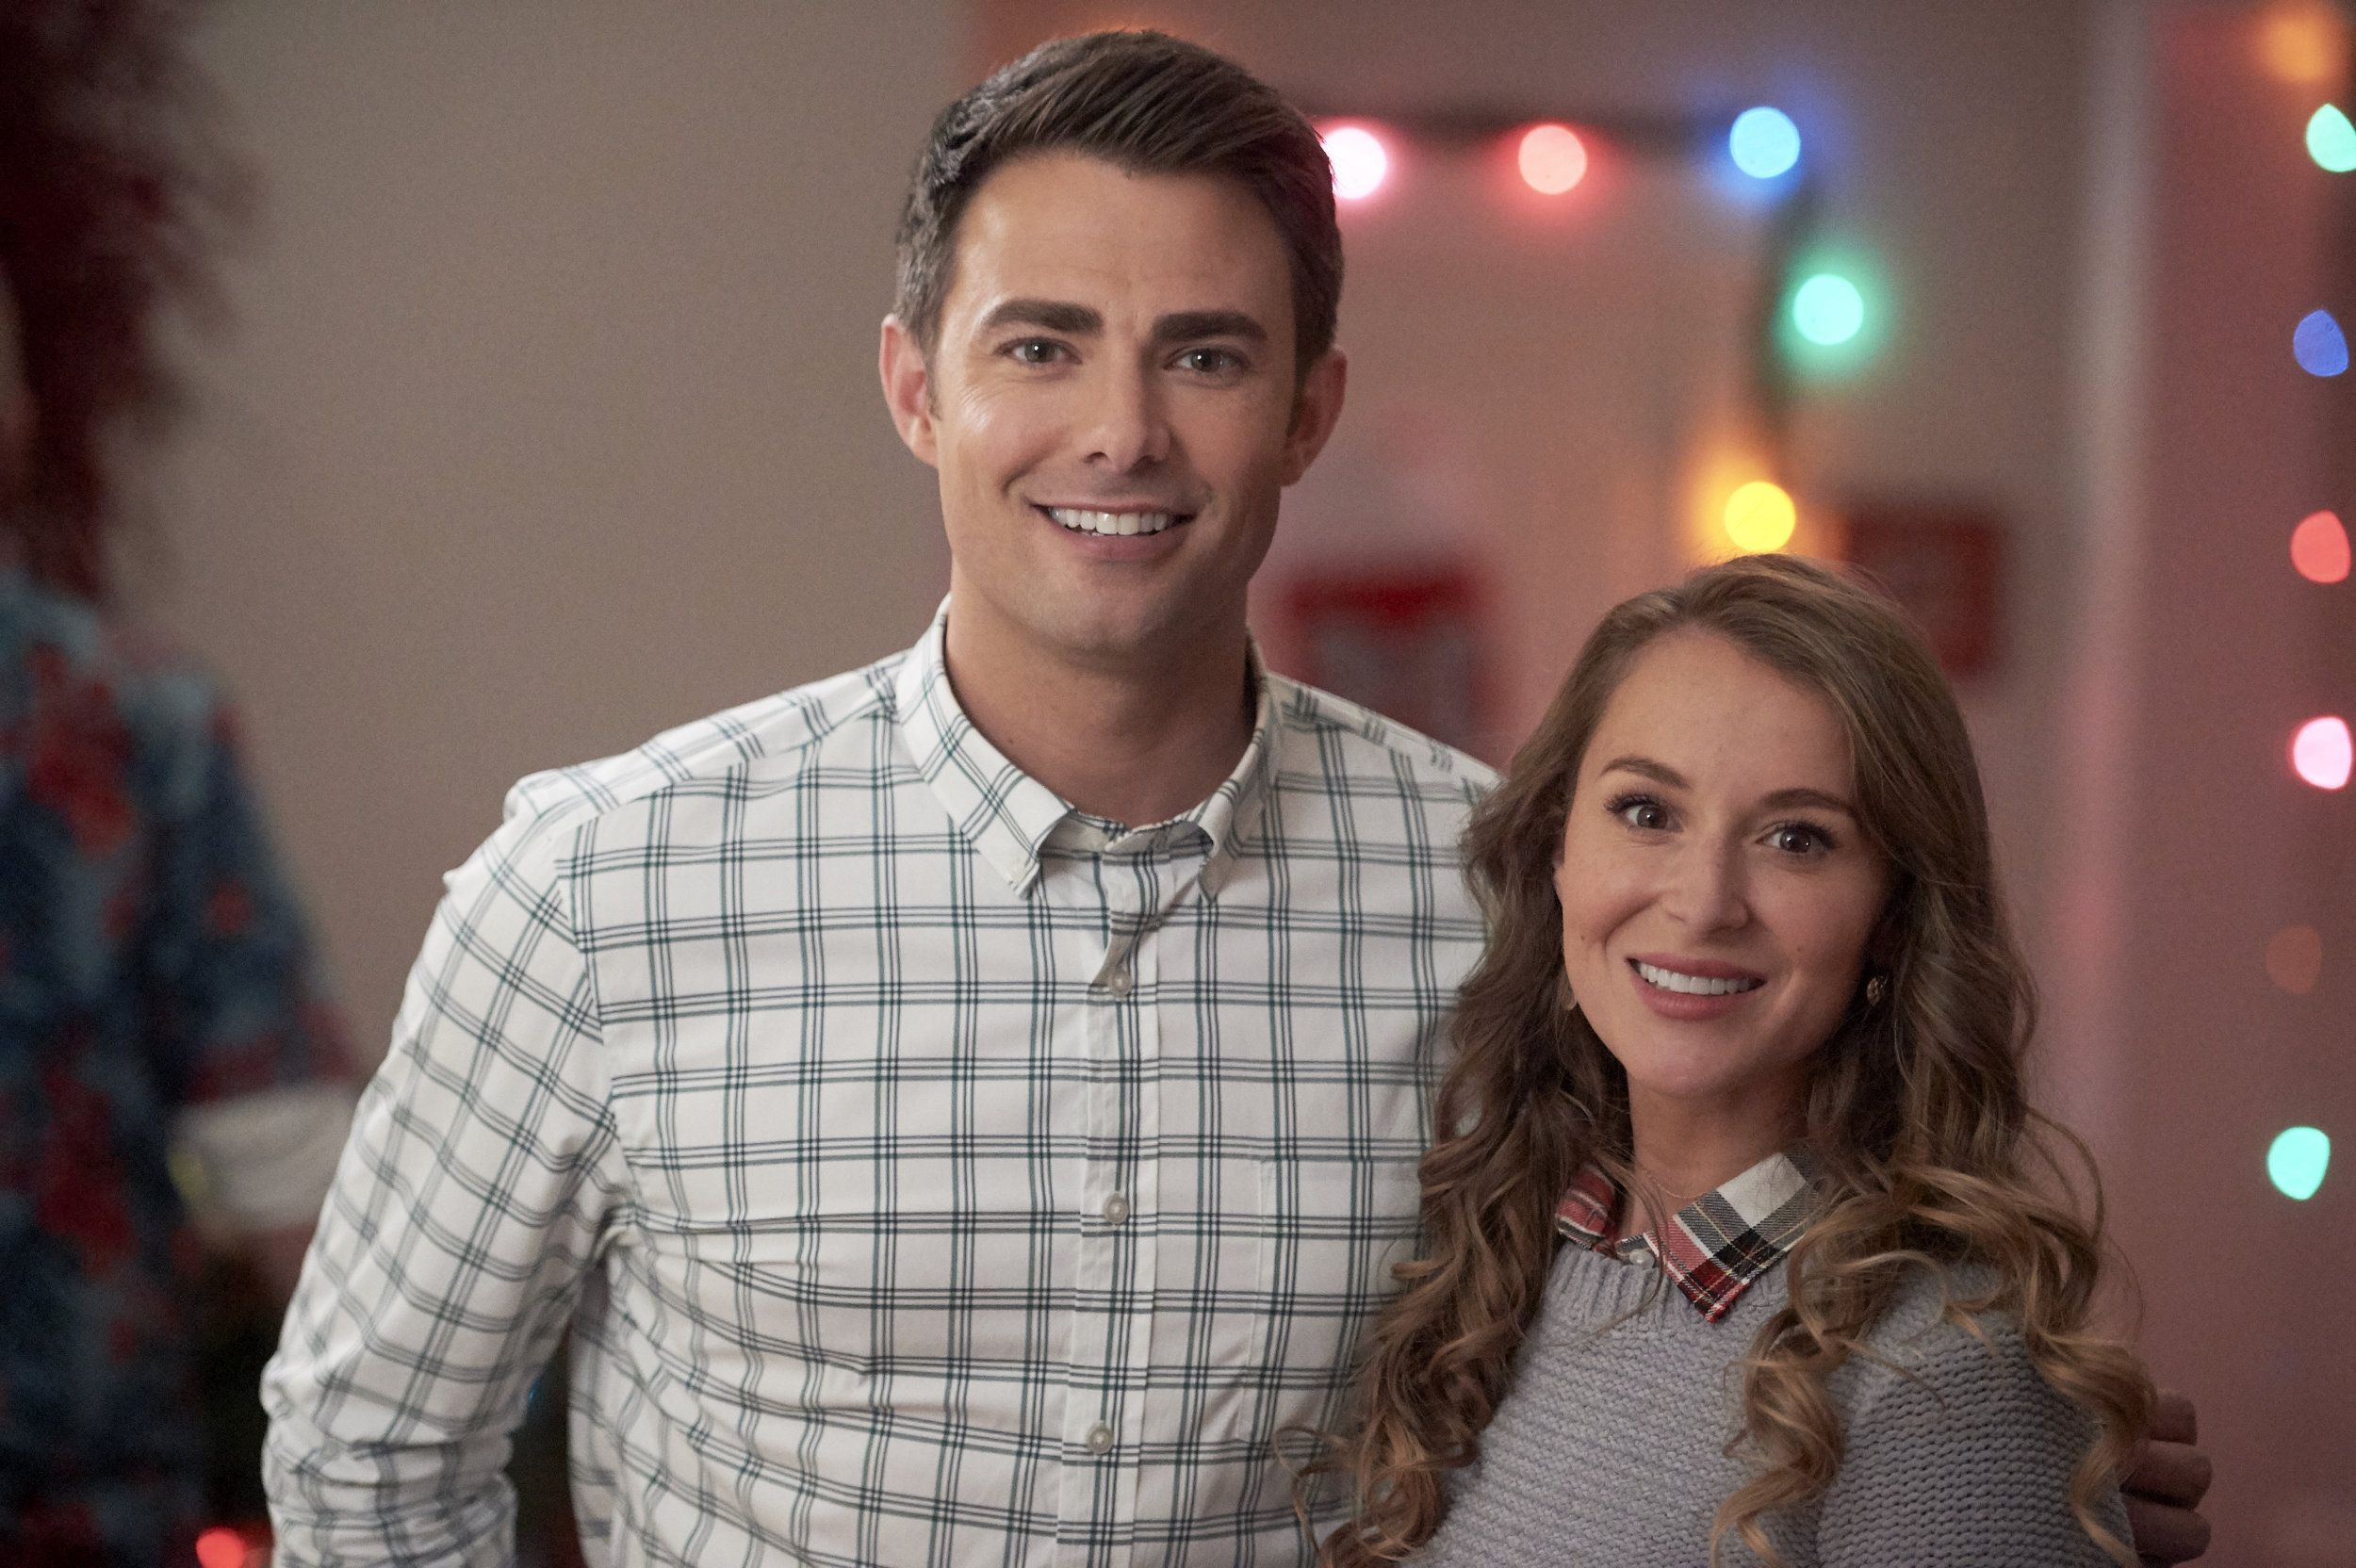 watch a preview for christmas made to order starring alexa penavega and jonathan bennett jonathan bennett family christmas movies hallmark christmas movies hallmark christmas movies